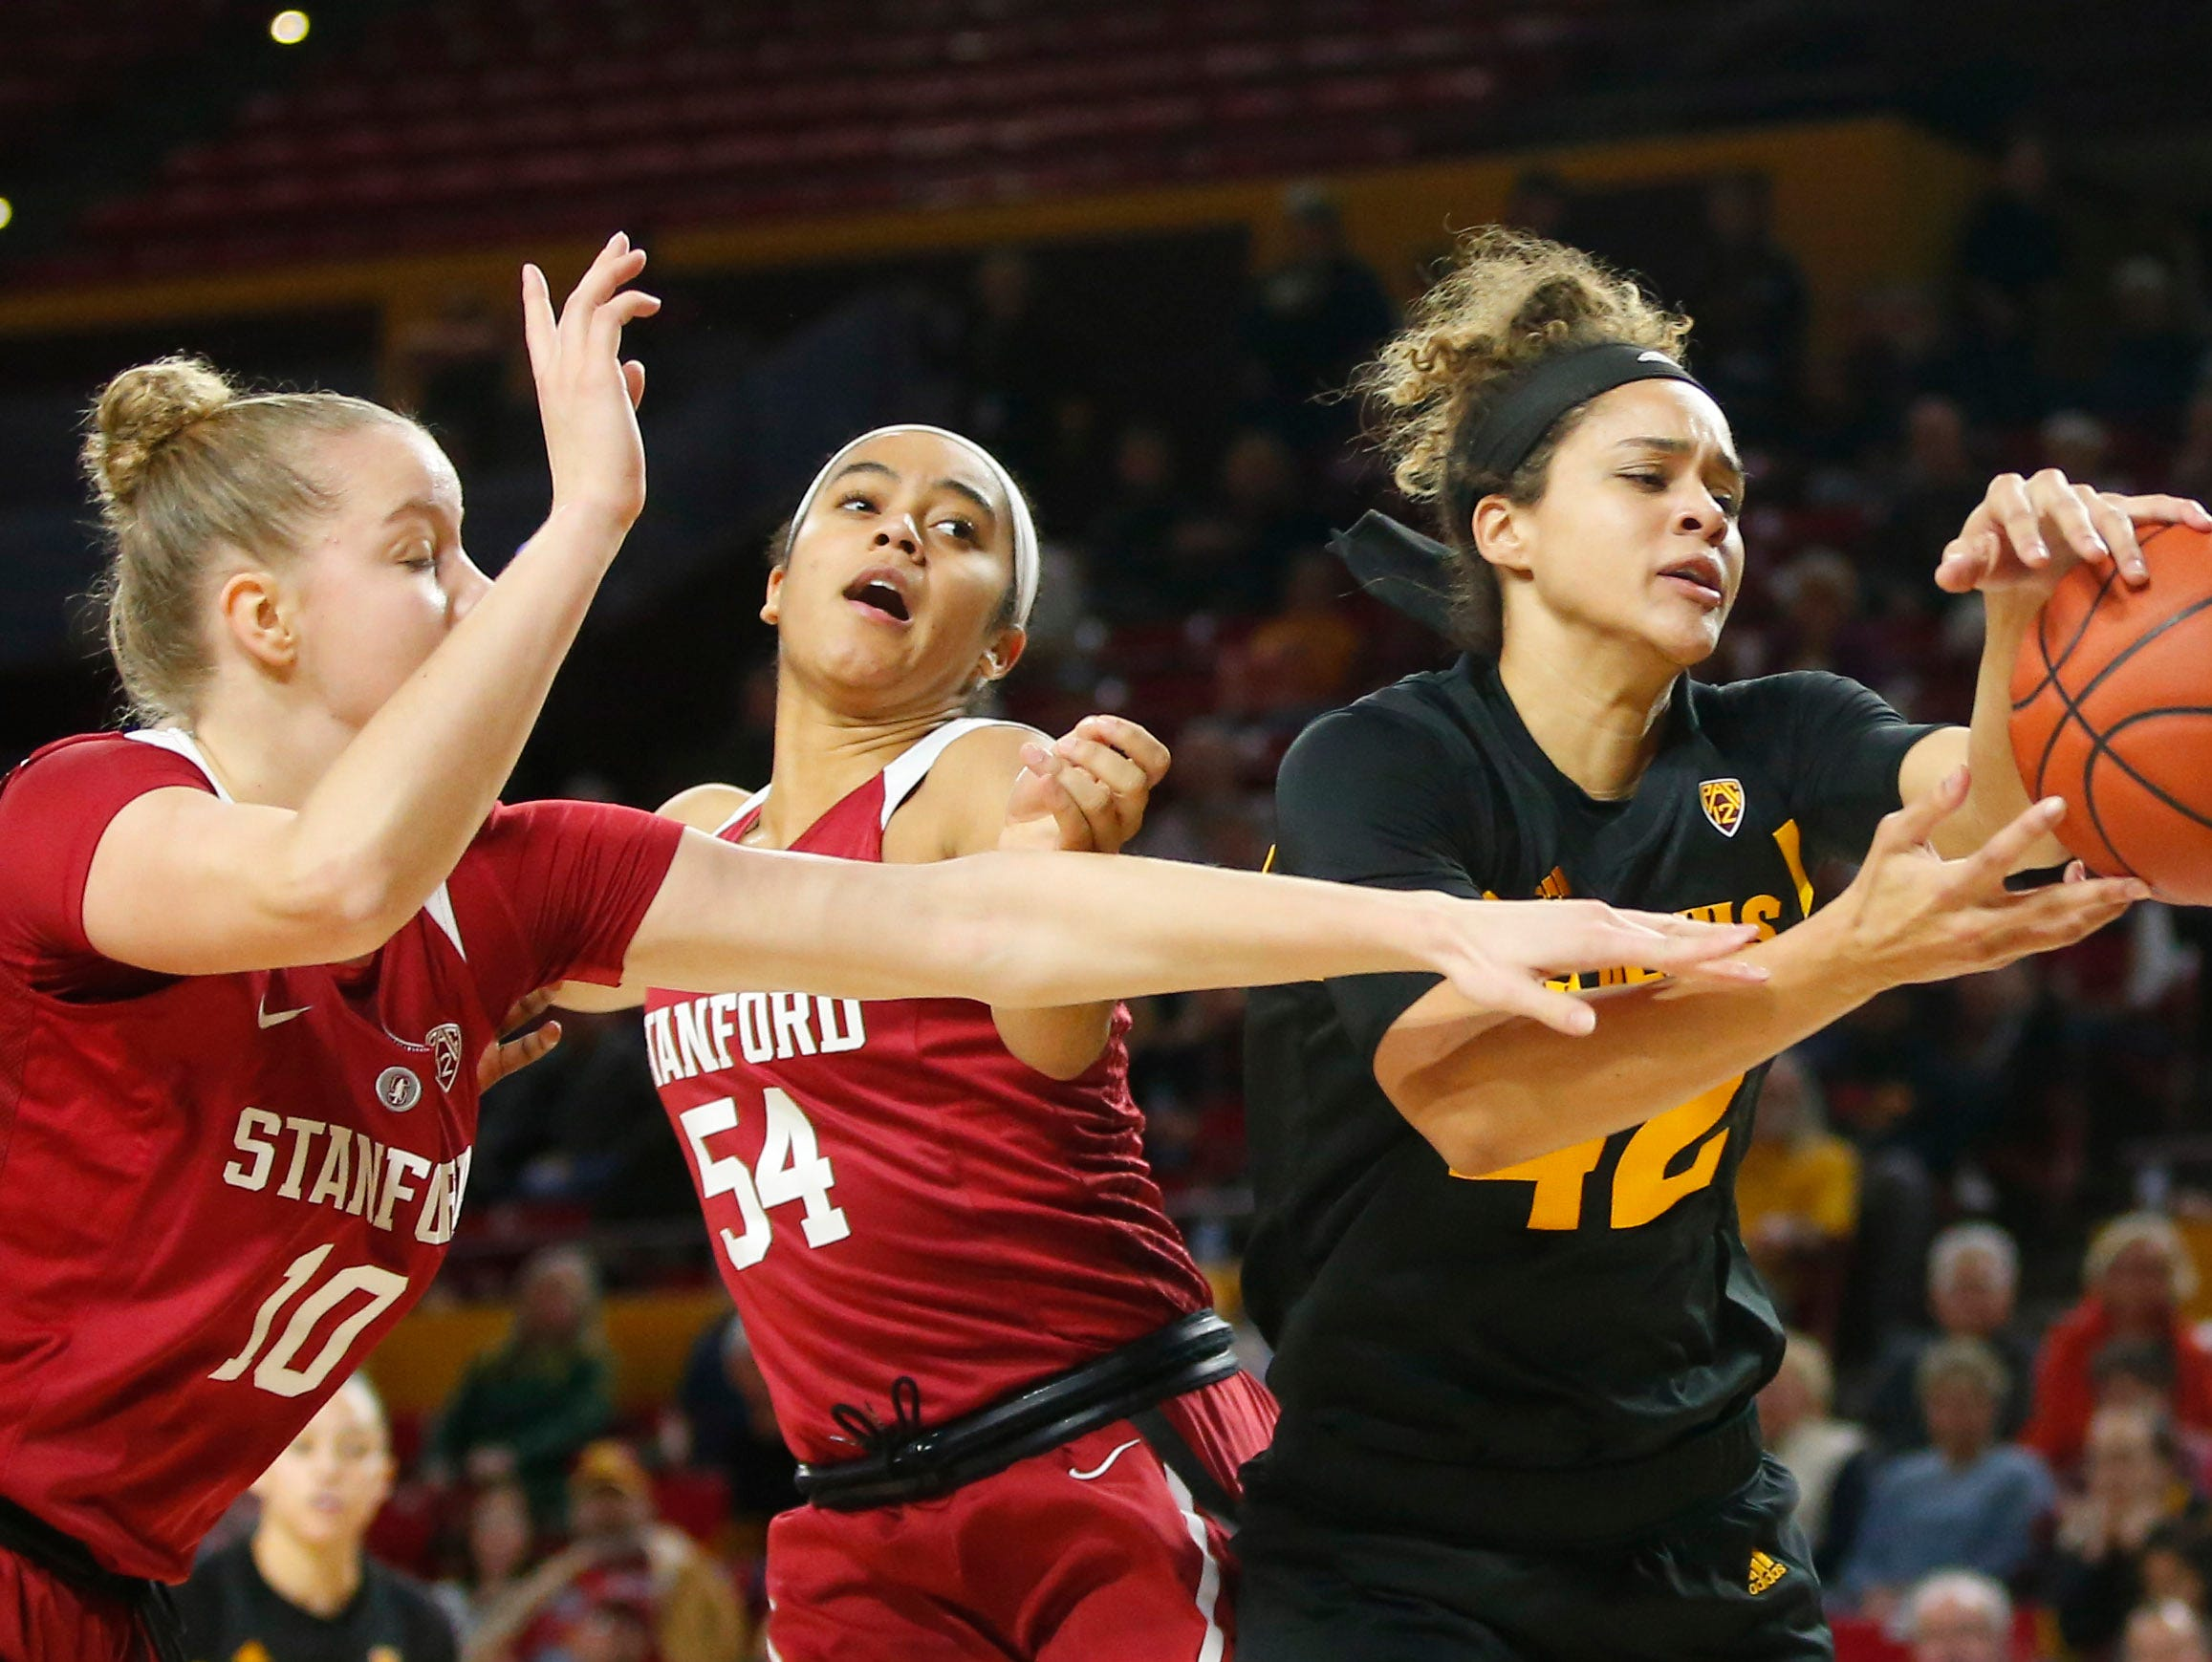 Stanford University Alyssa Jerome (10) and Jenna Brown (54) battle Arizona State University Kianna Ibis (42)  for the rebound during a women's basketball game at Well Fargo Arena in Tempe on January 11.